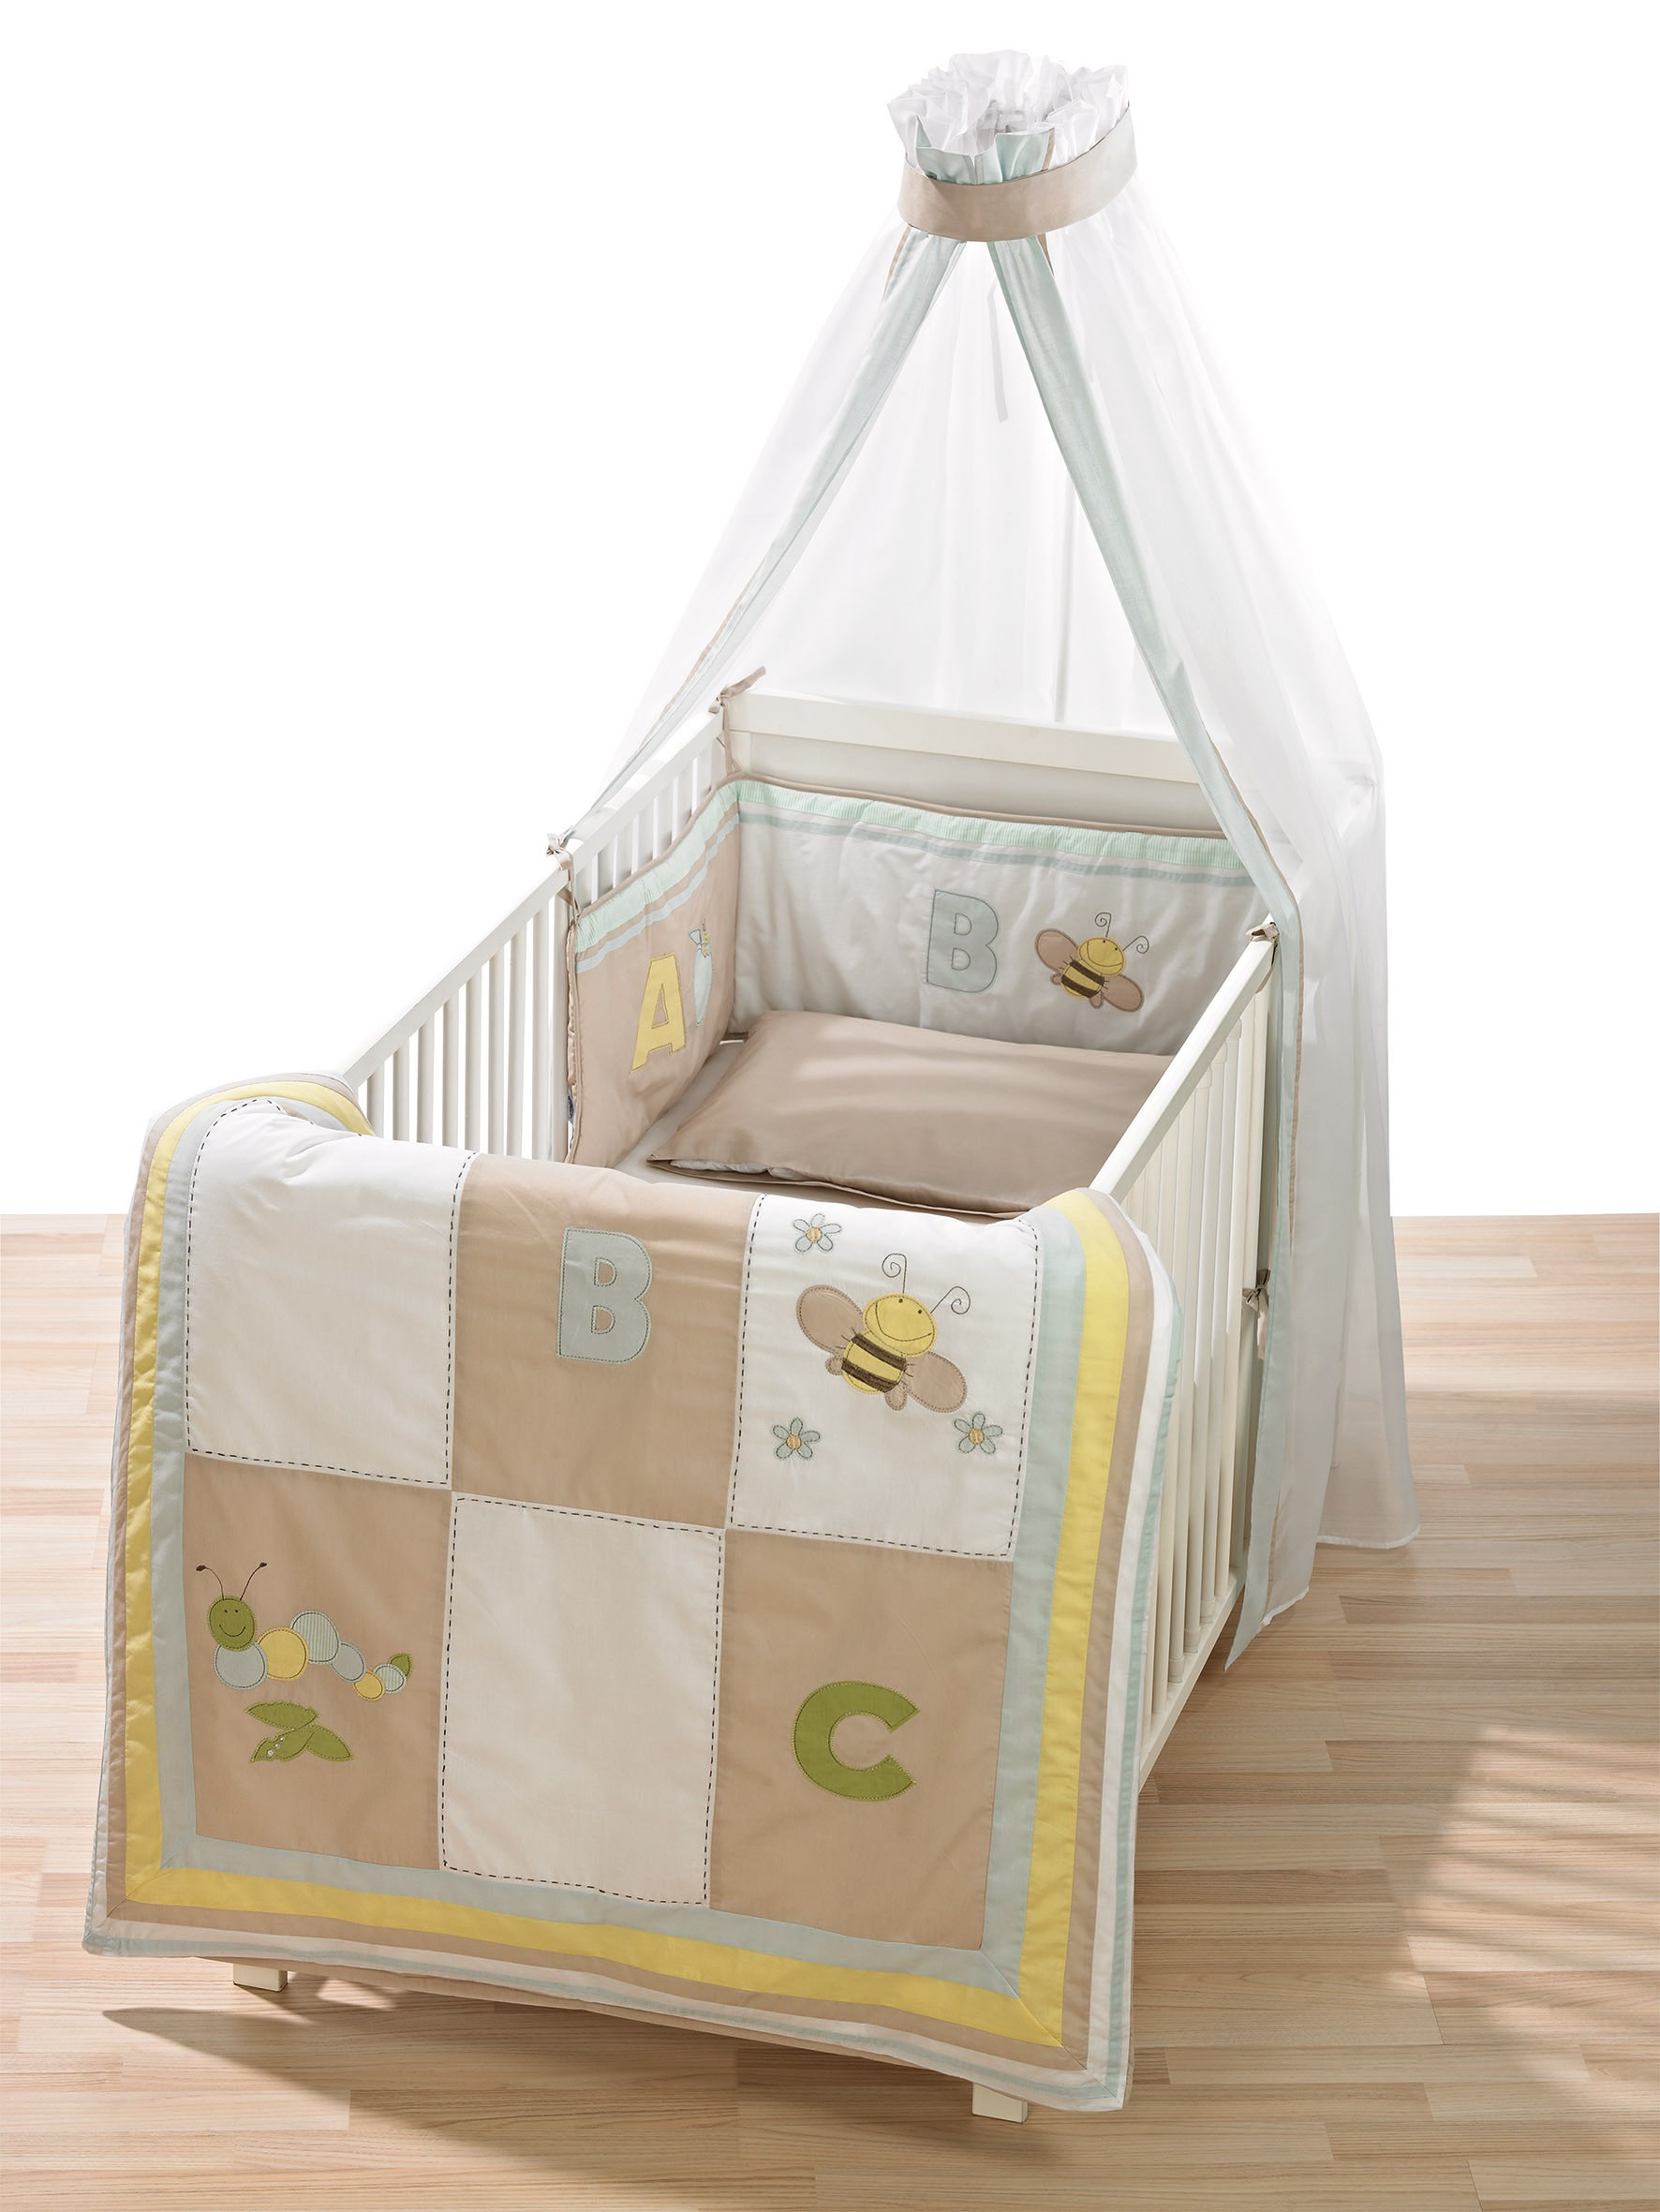 Alvi Bettset Himmelset Applikation Patchwork beige 3-tlg.